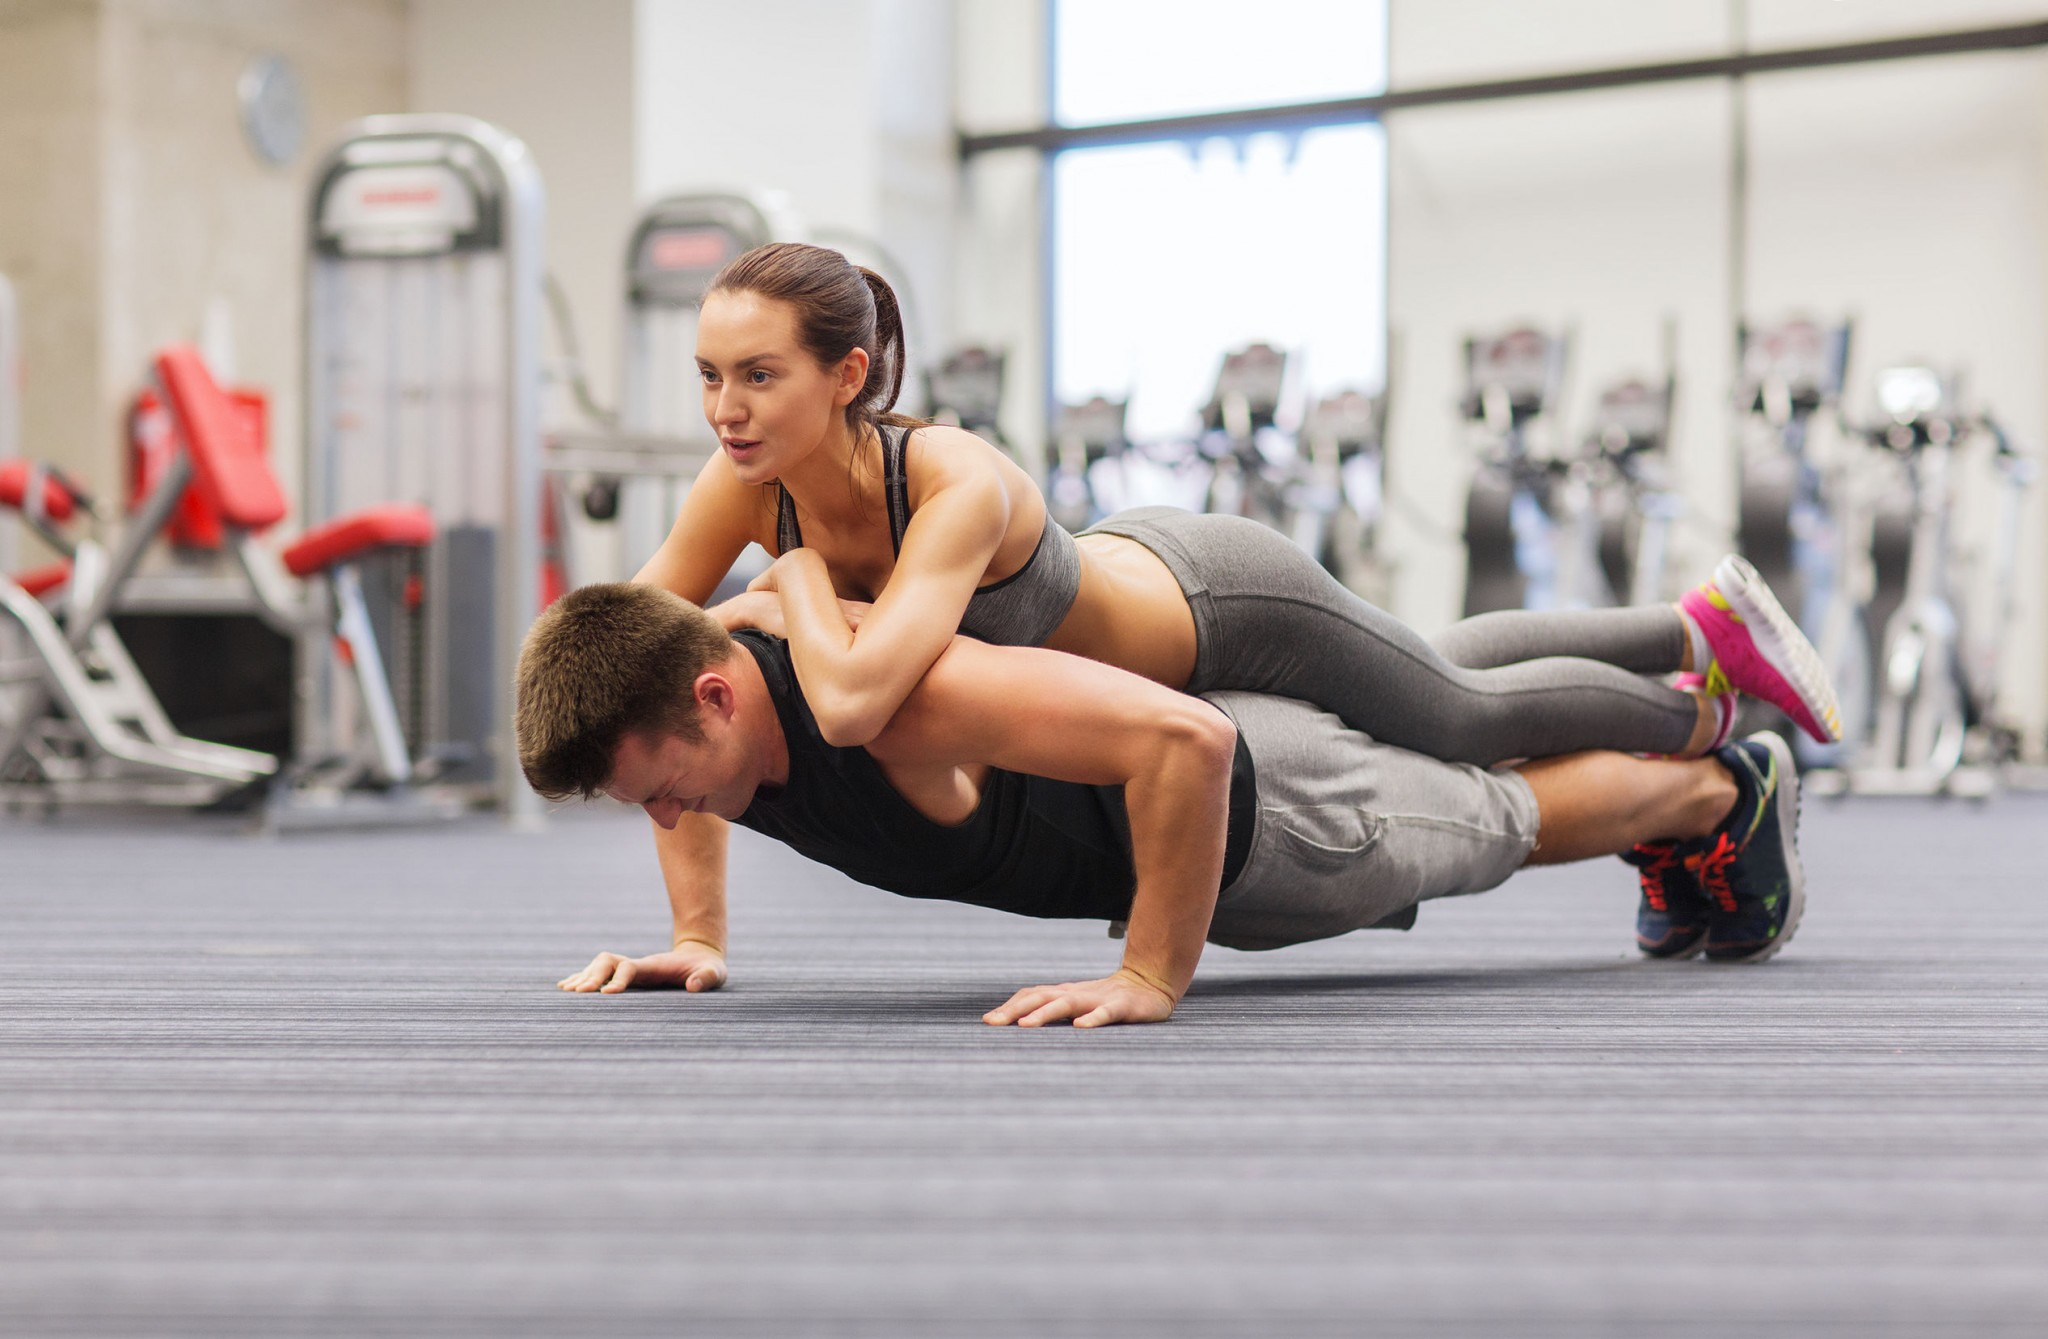 couple-fitness-sport-training